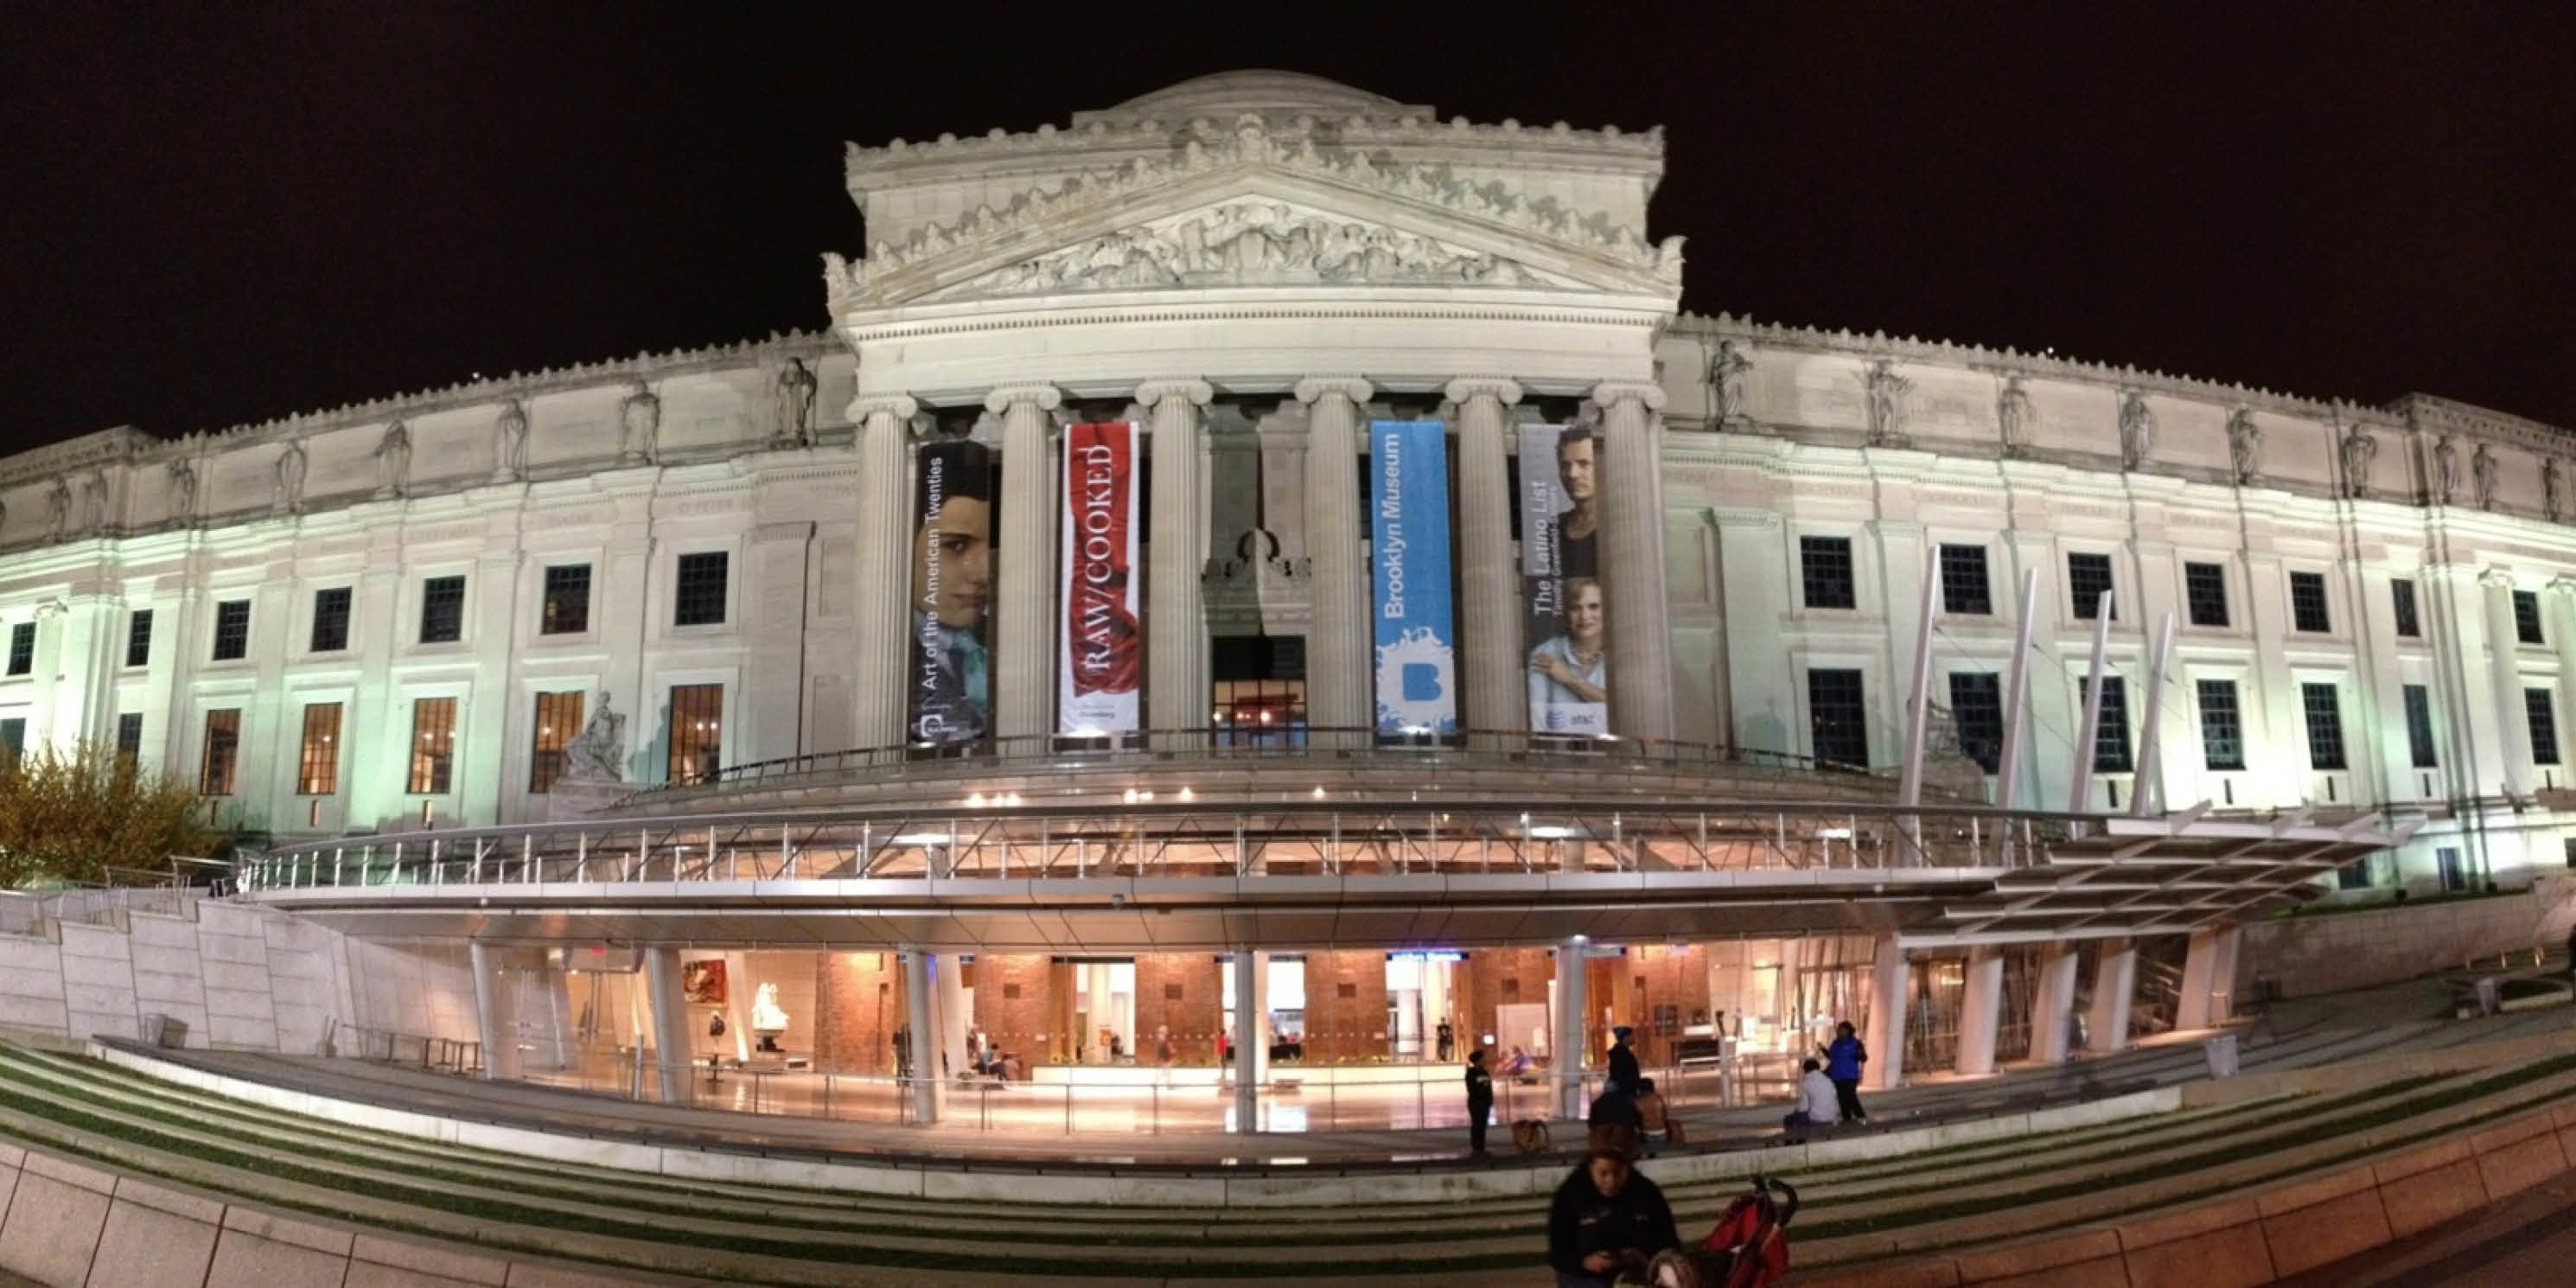 entrance to the Brooklyn Museum at night